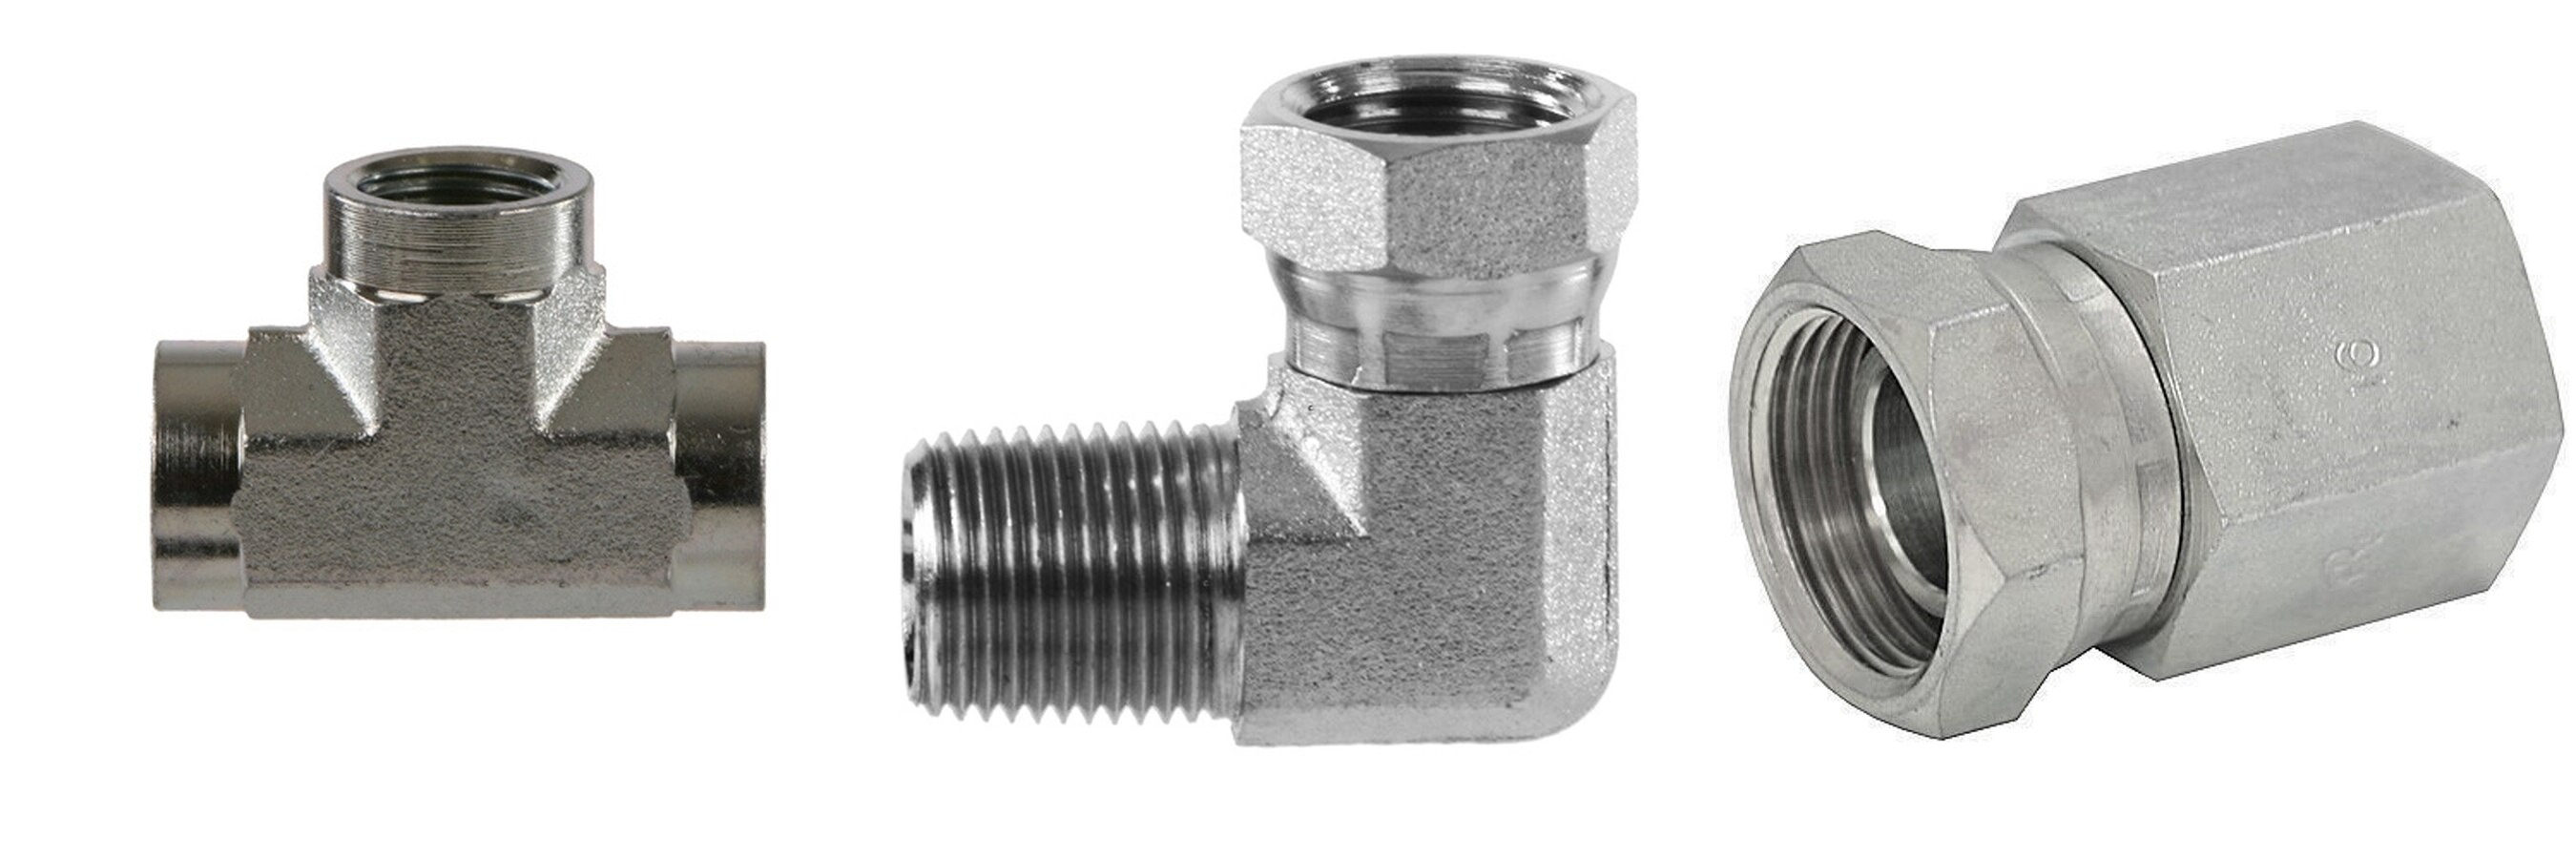 High pressure hydraulic fittings, tees, swivels, elbows and more.